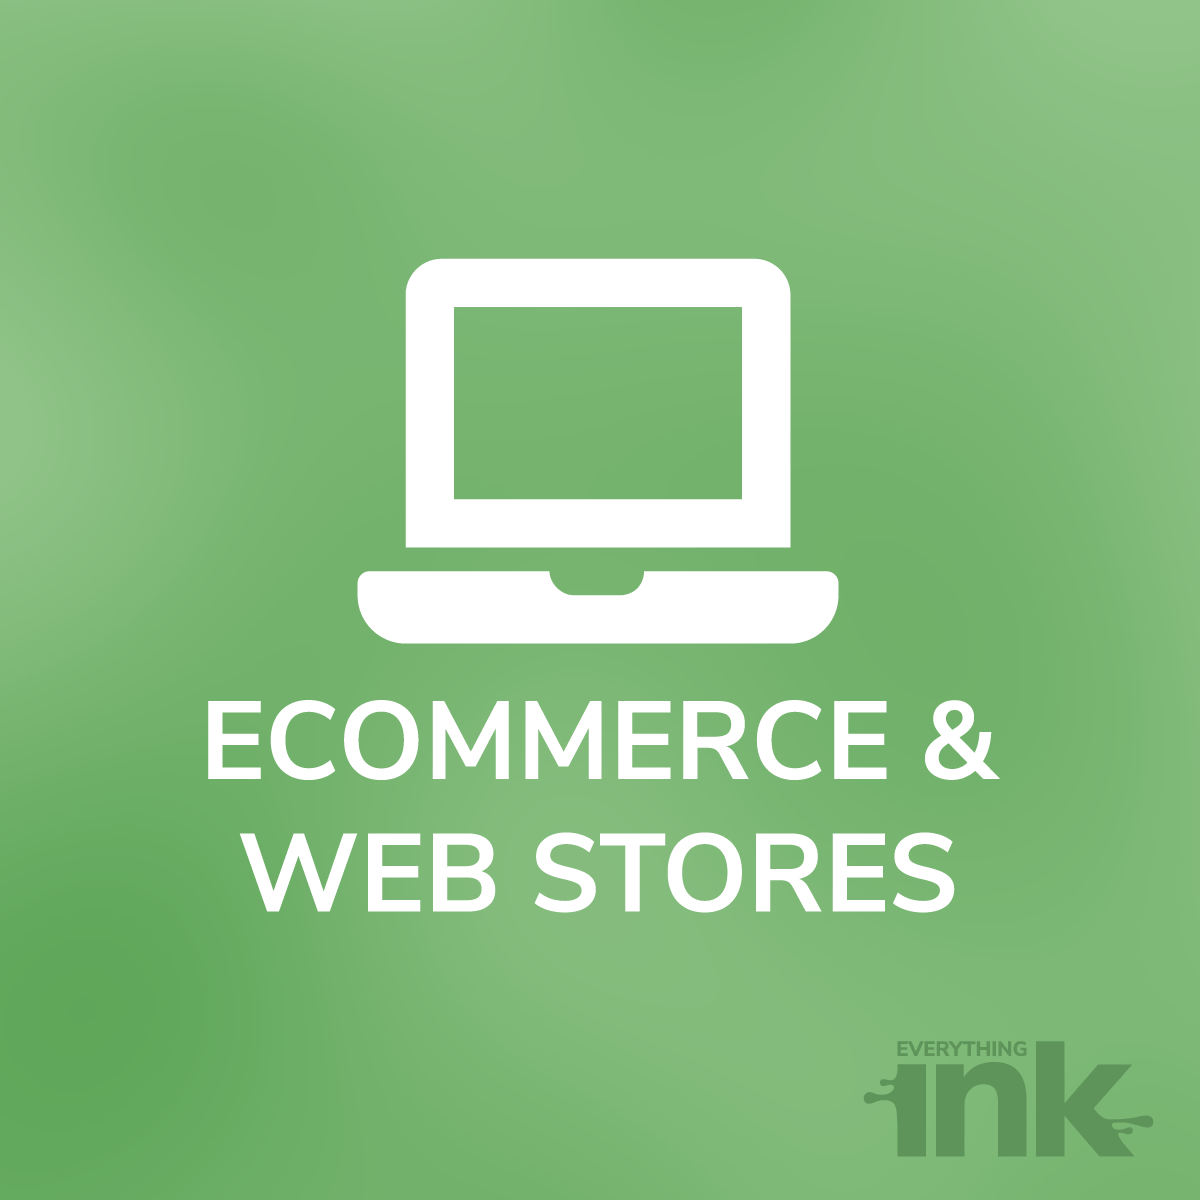 E-Commerce and Web Stores by Everything Ink